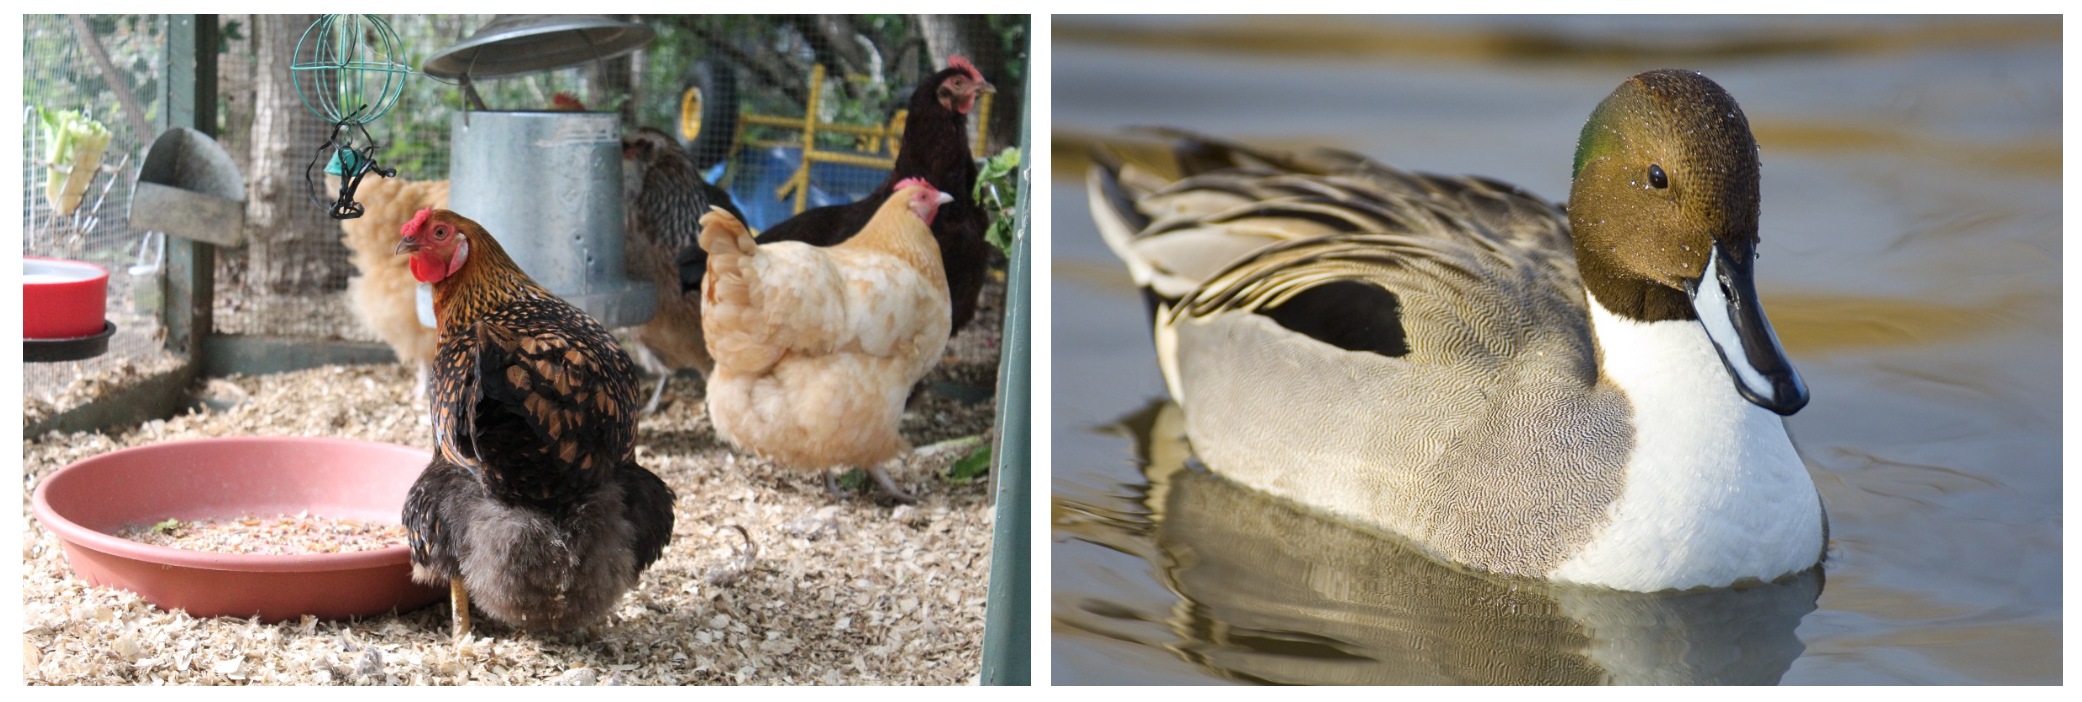 Left: Backyard chickens, Long Island, NY. Credit Erica Cirino. Right: Northern pintail duck (male), Japan. Credit U.S. Geological Survey.